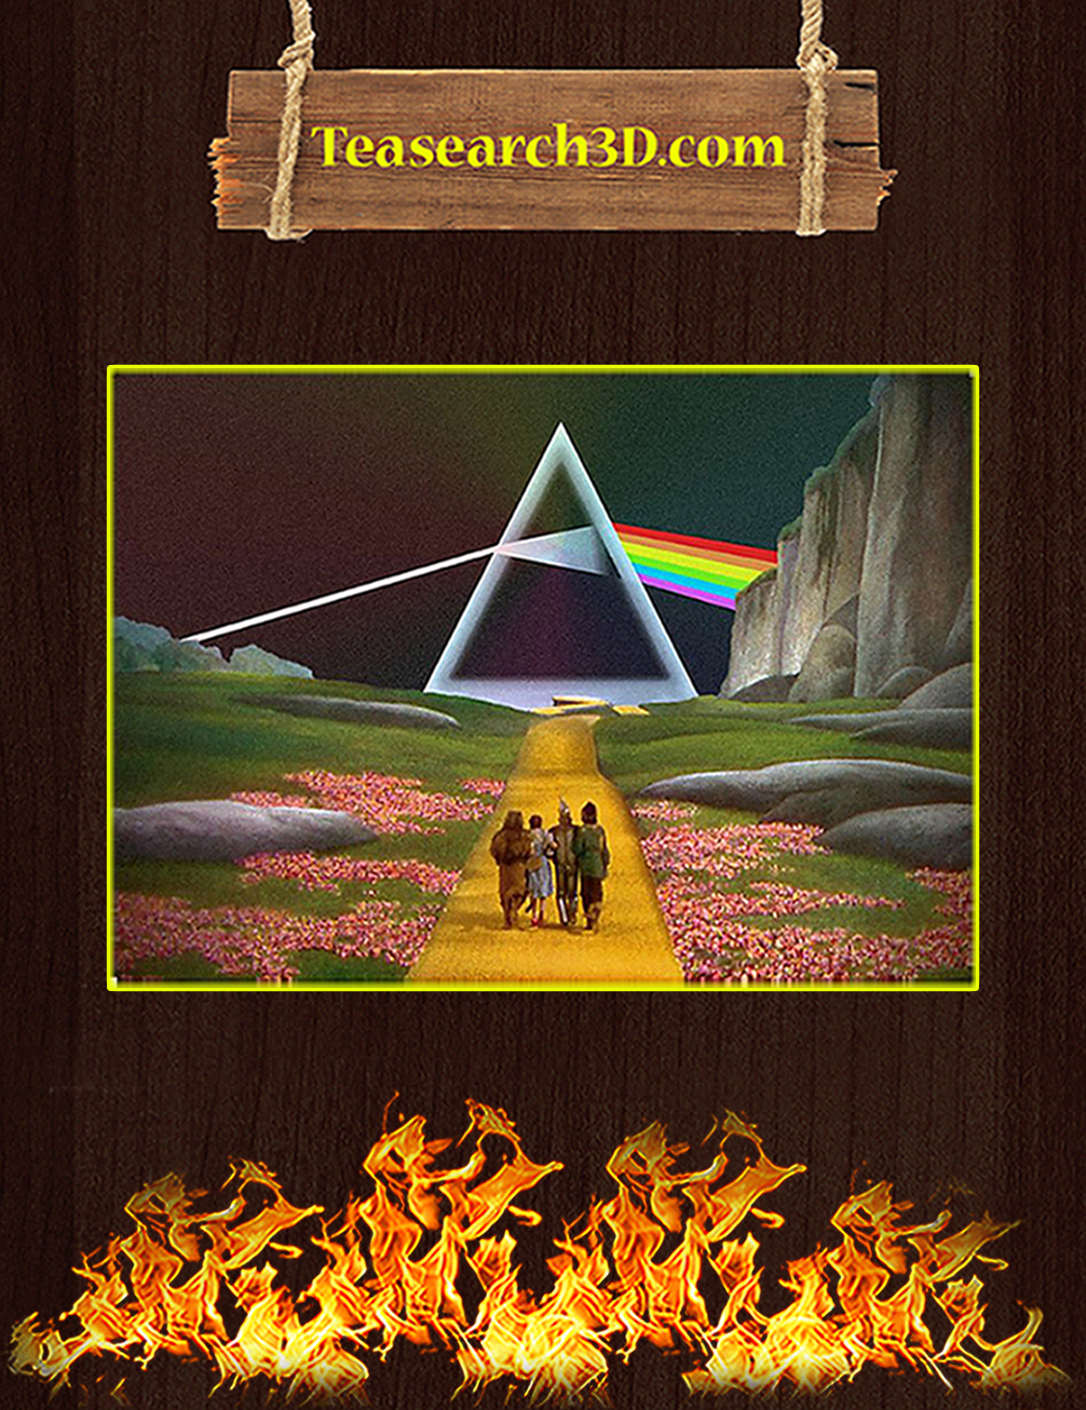 Pink floyd the dark side of the moon wizard of oz poster A2